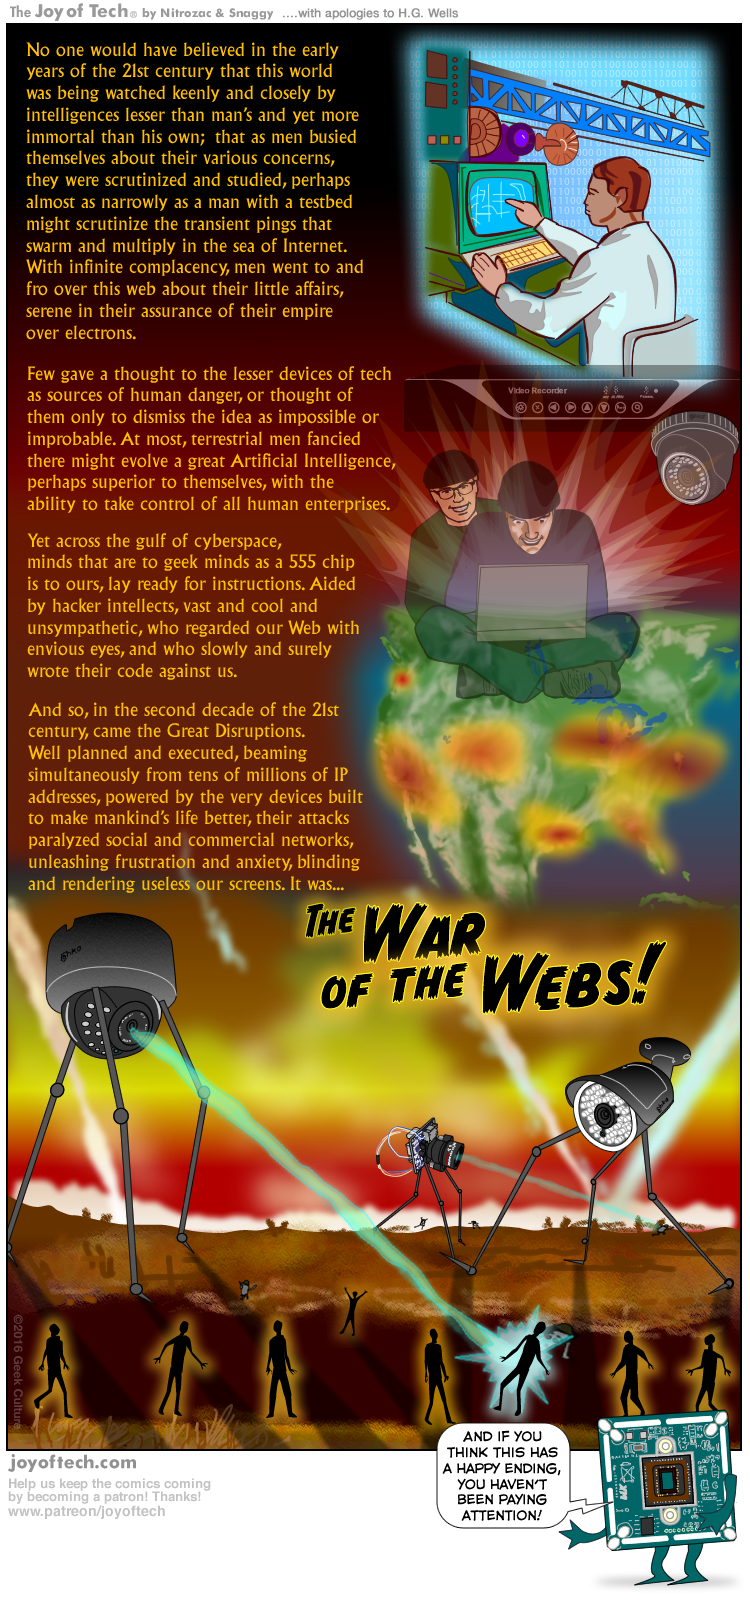 The War of the Webs!